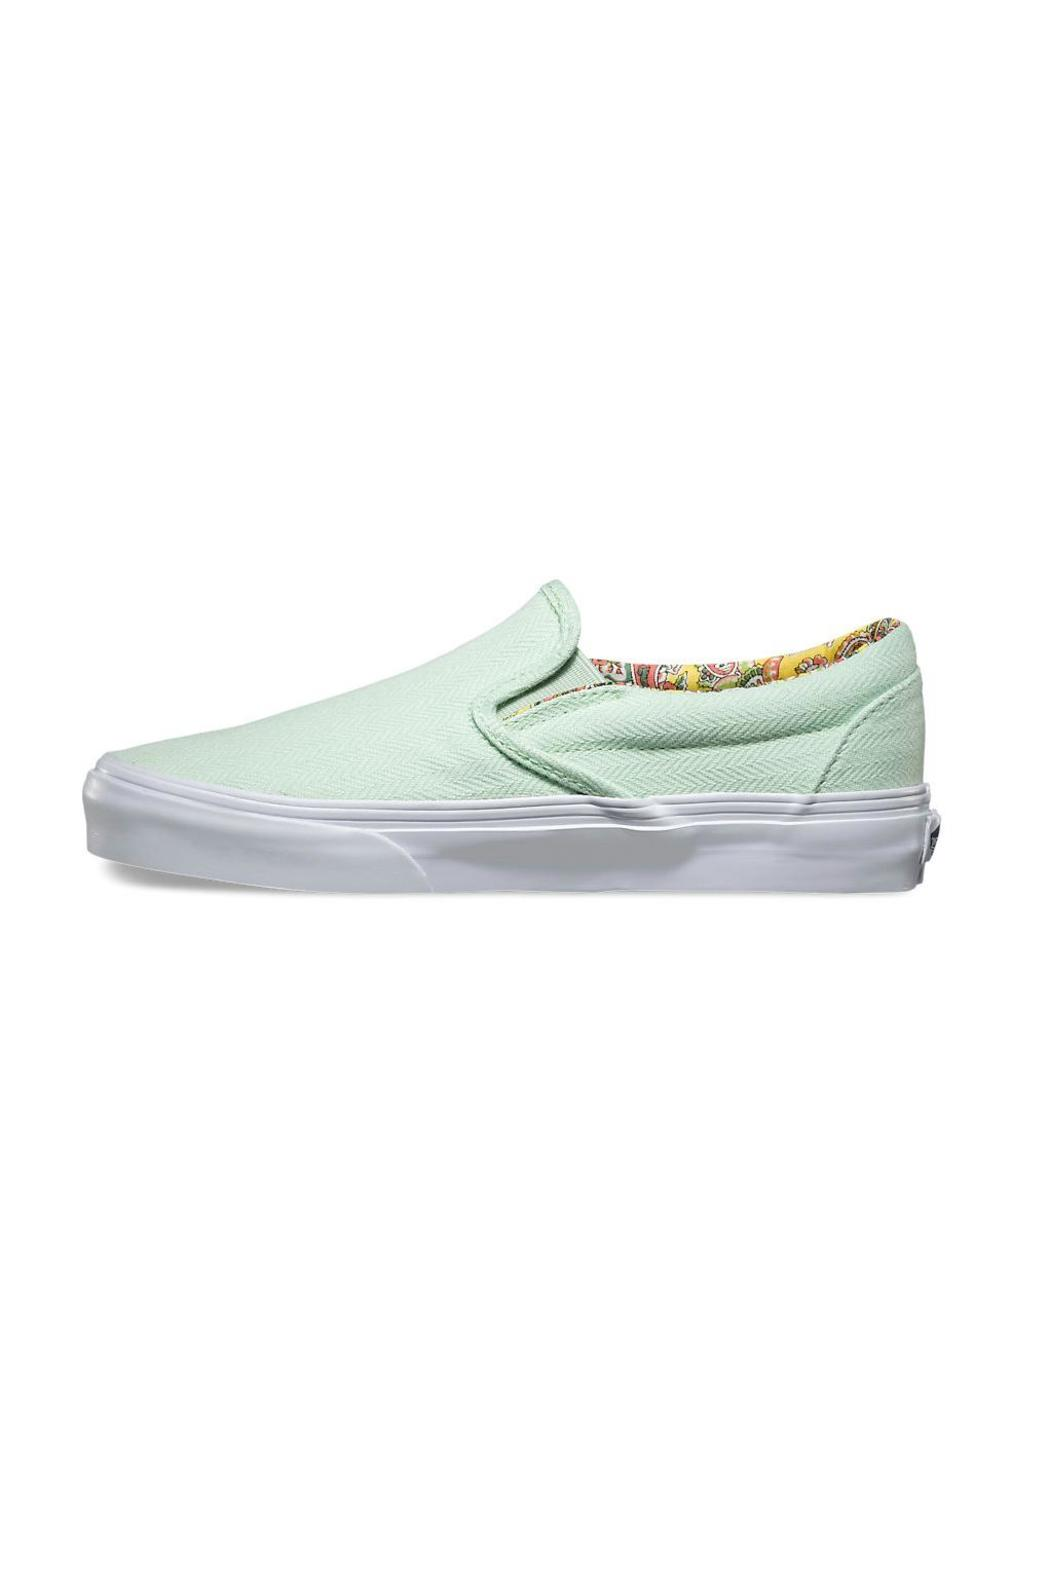 ae2c53cc5b Vans Pastel Green Slip-Ons from Mississippi by Wilai Boutique ...